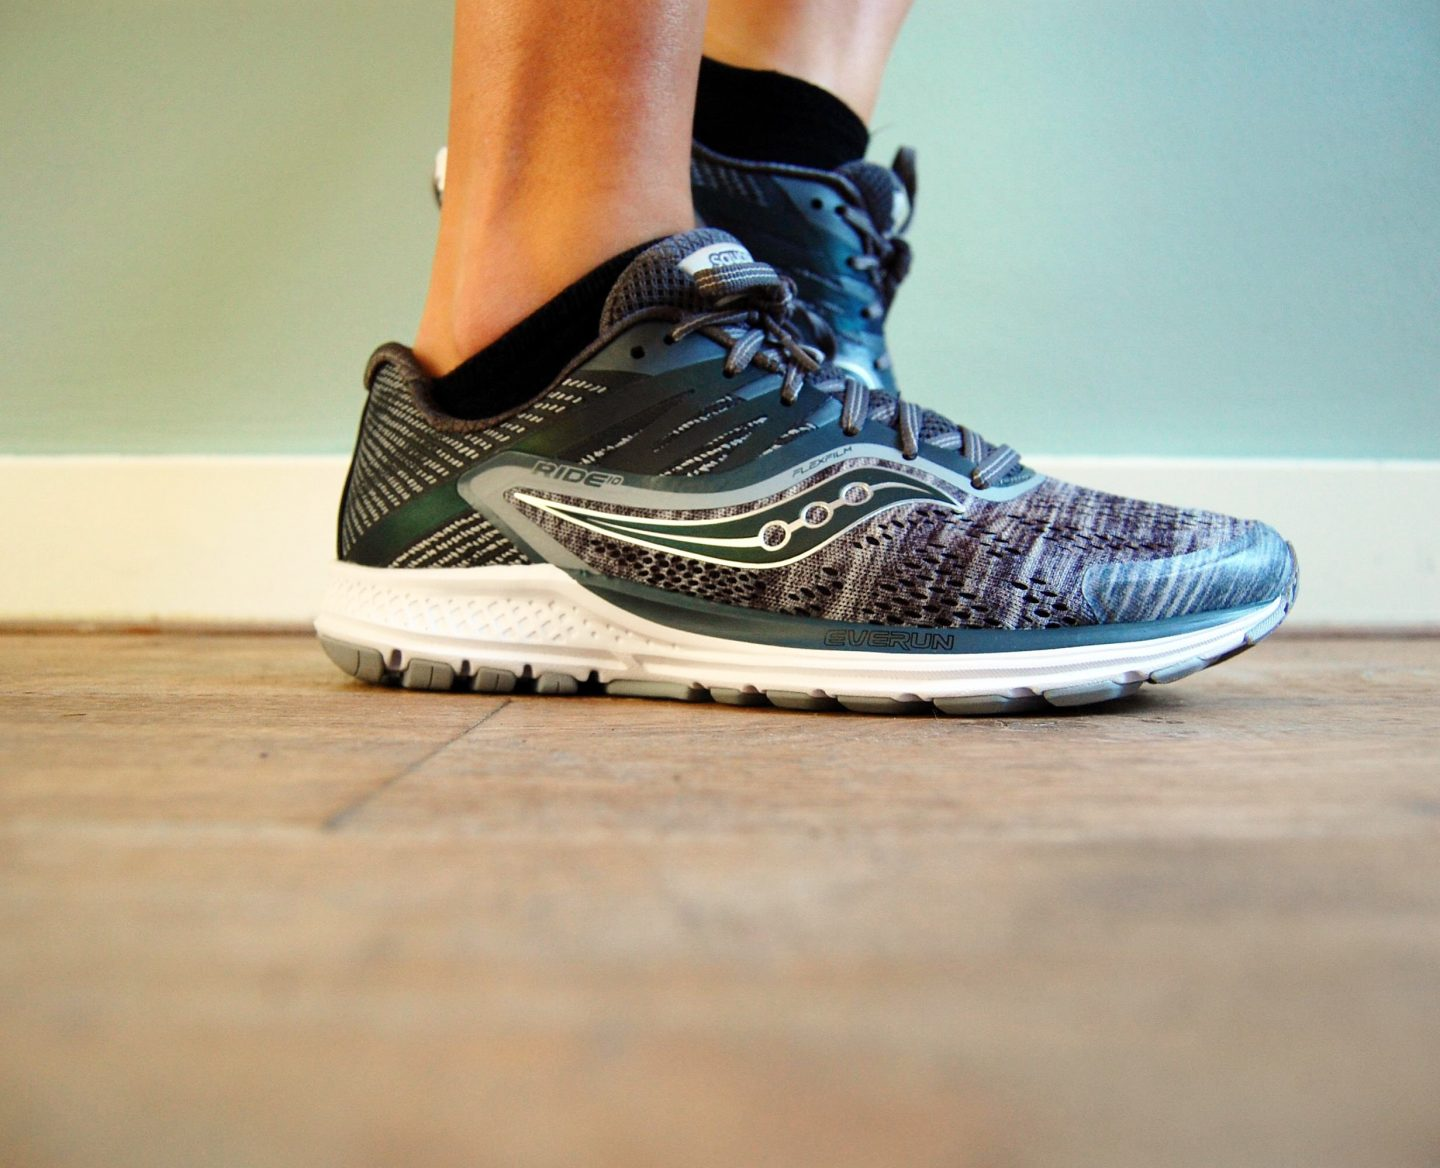 Review: Saucony Heathered Chroma Ride 10